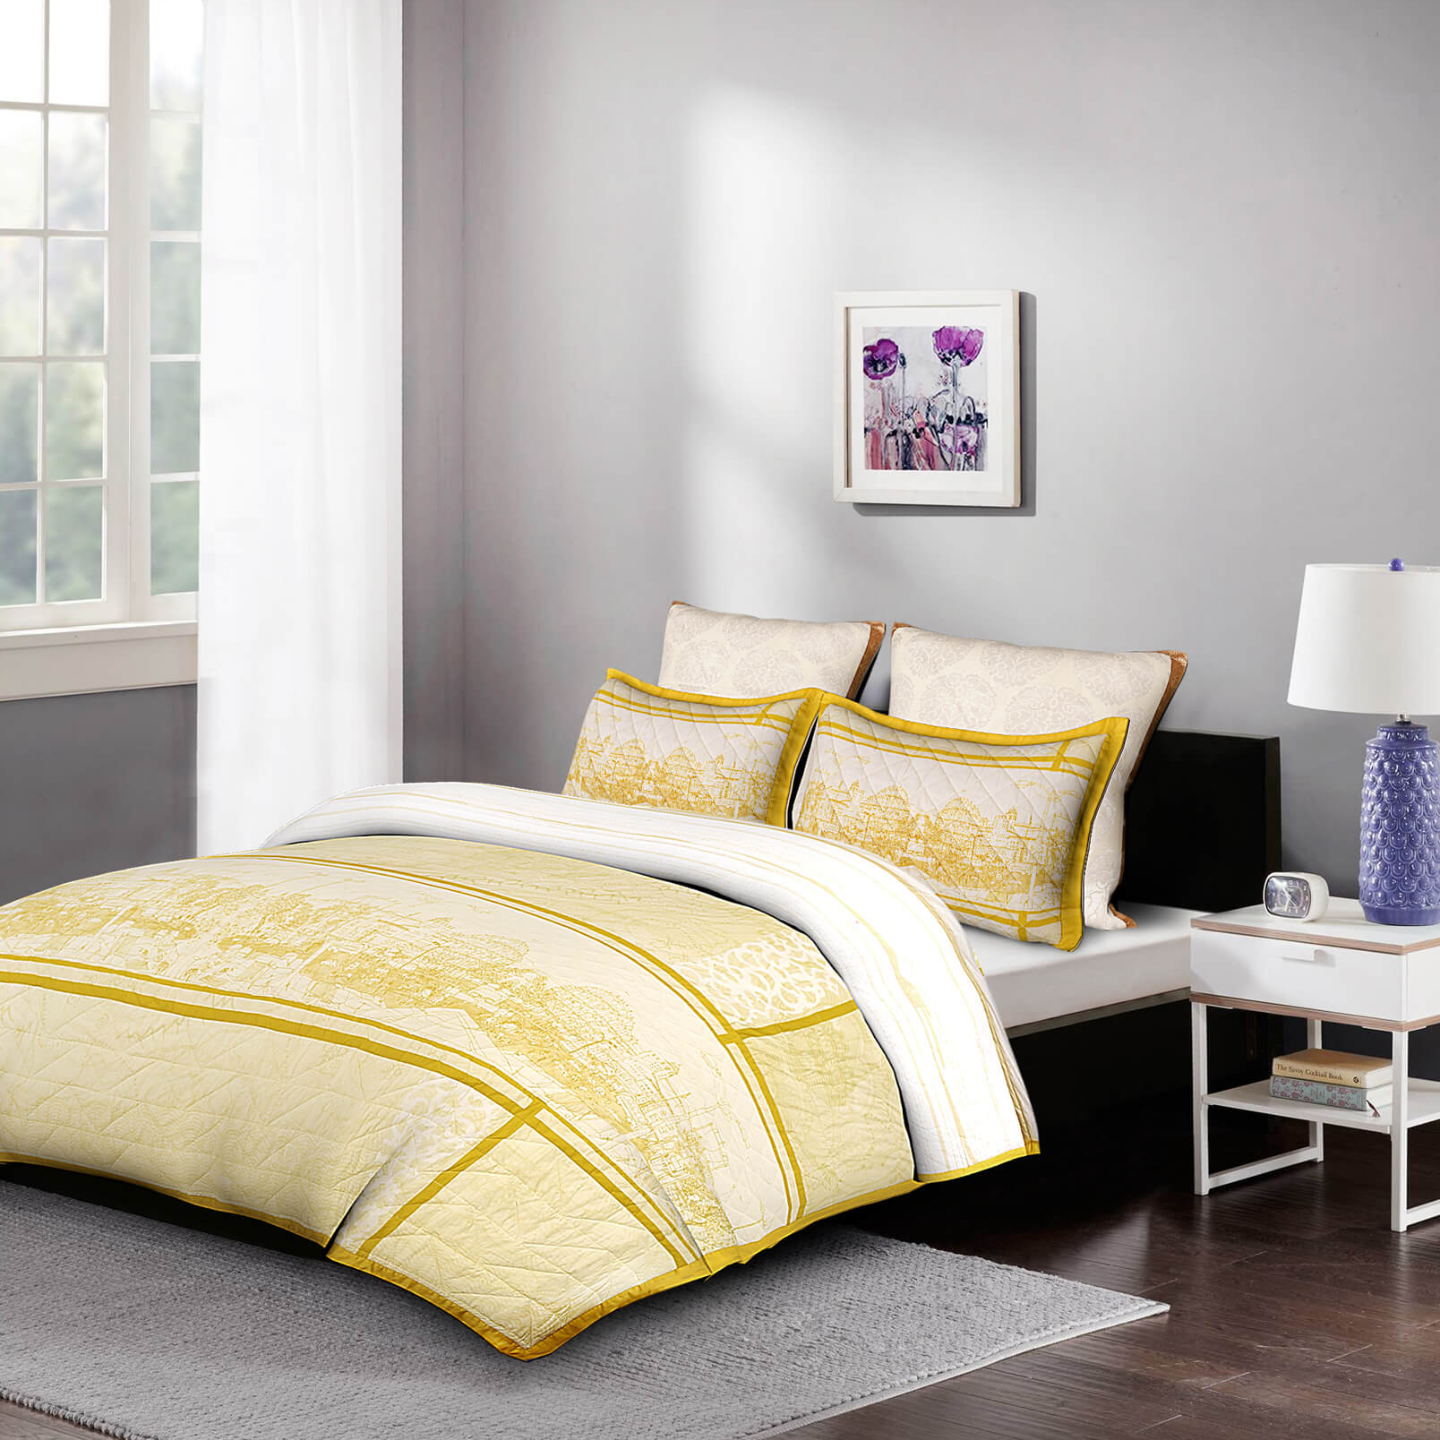 5 Piece Magnificent Hawamahal King Size Cotton Quilted Bedspread